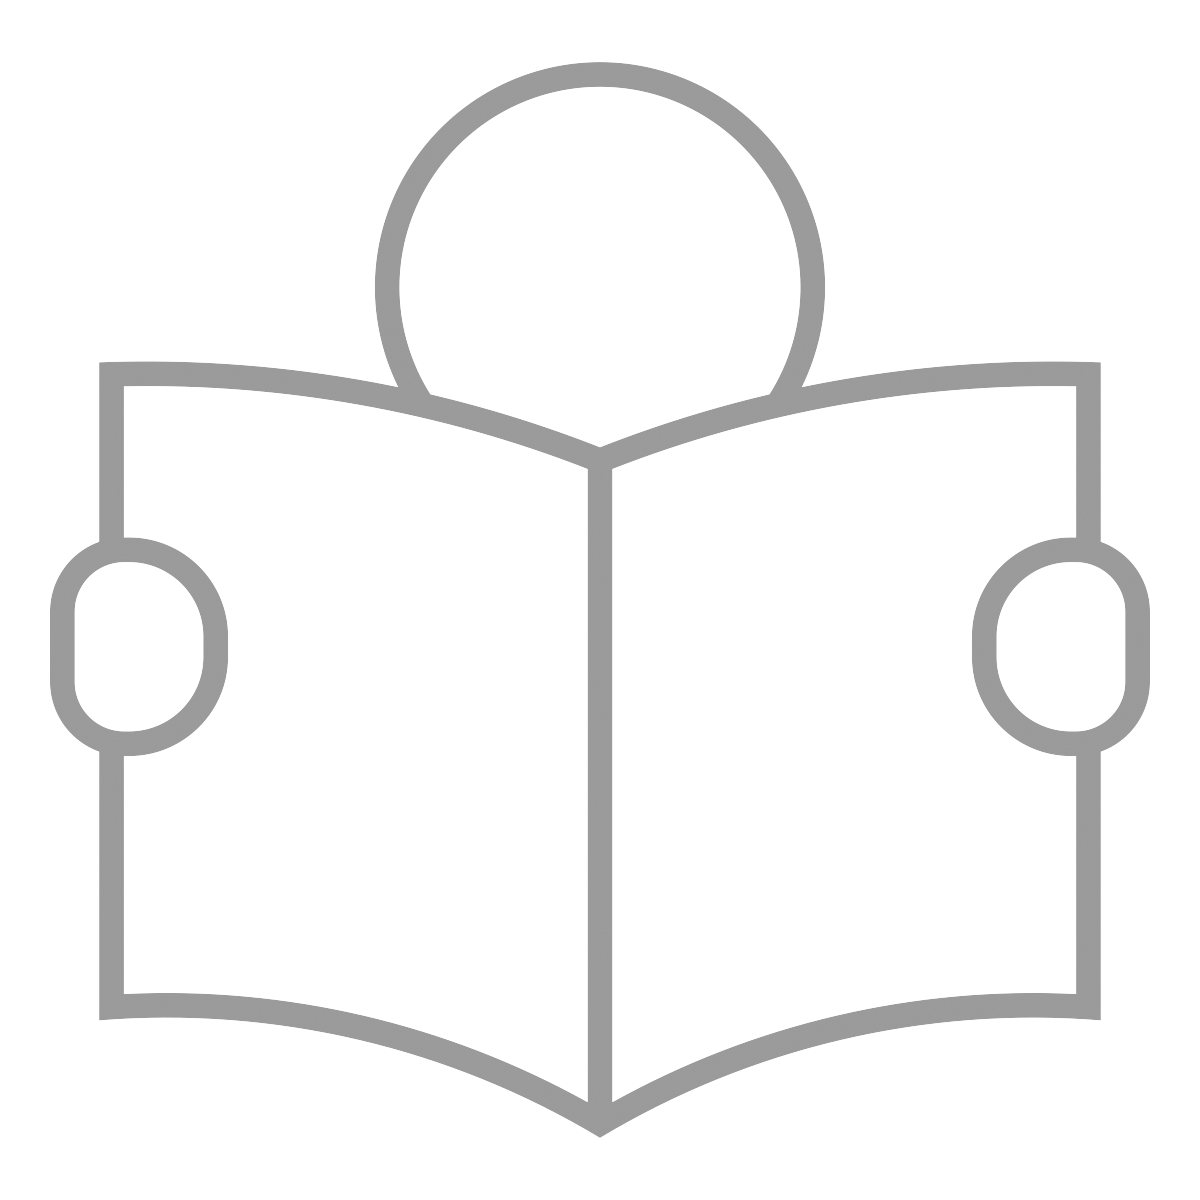 Cognitive Reading Icon